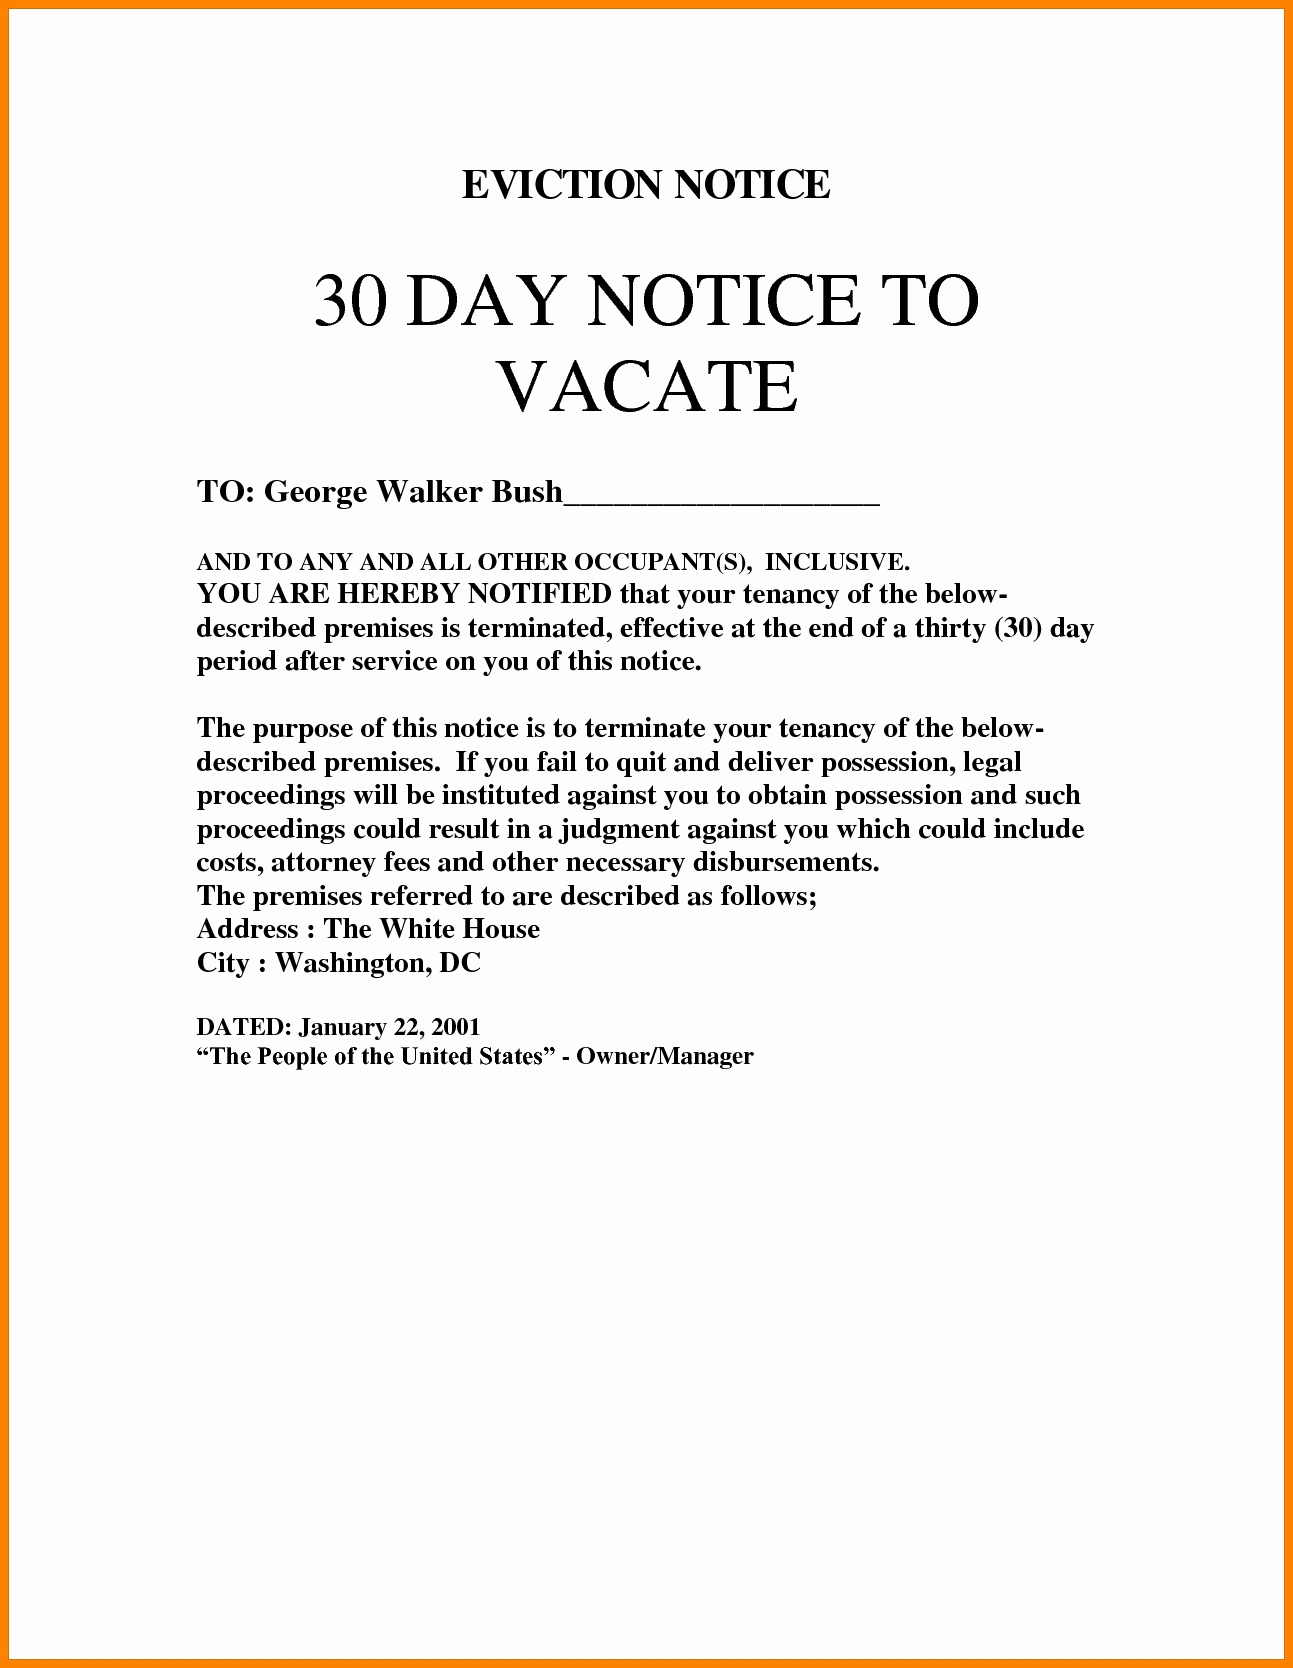 30 Day Eviction Notice Template New 30 Day Eviction Notice Template